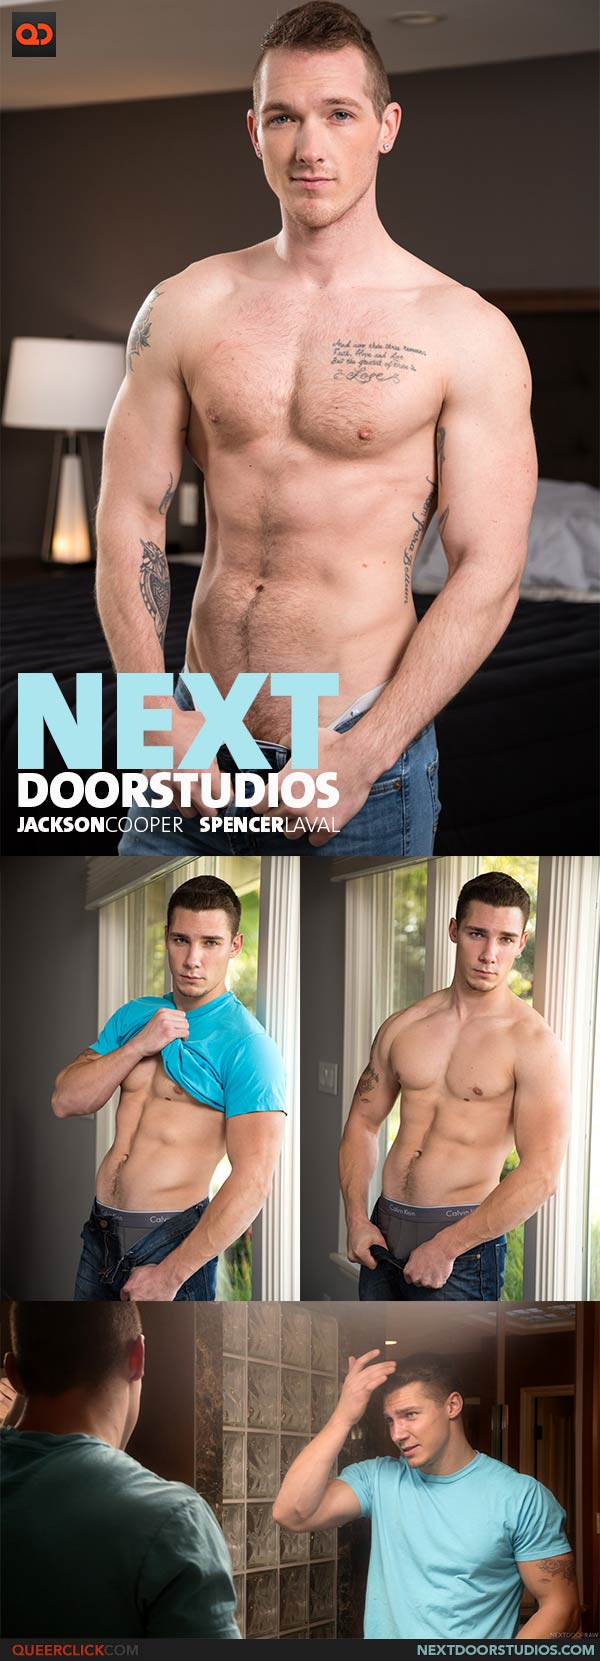 Next Door Studios:  Jackson Cooper and Spencer Laval